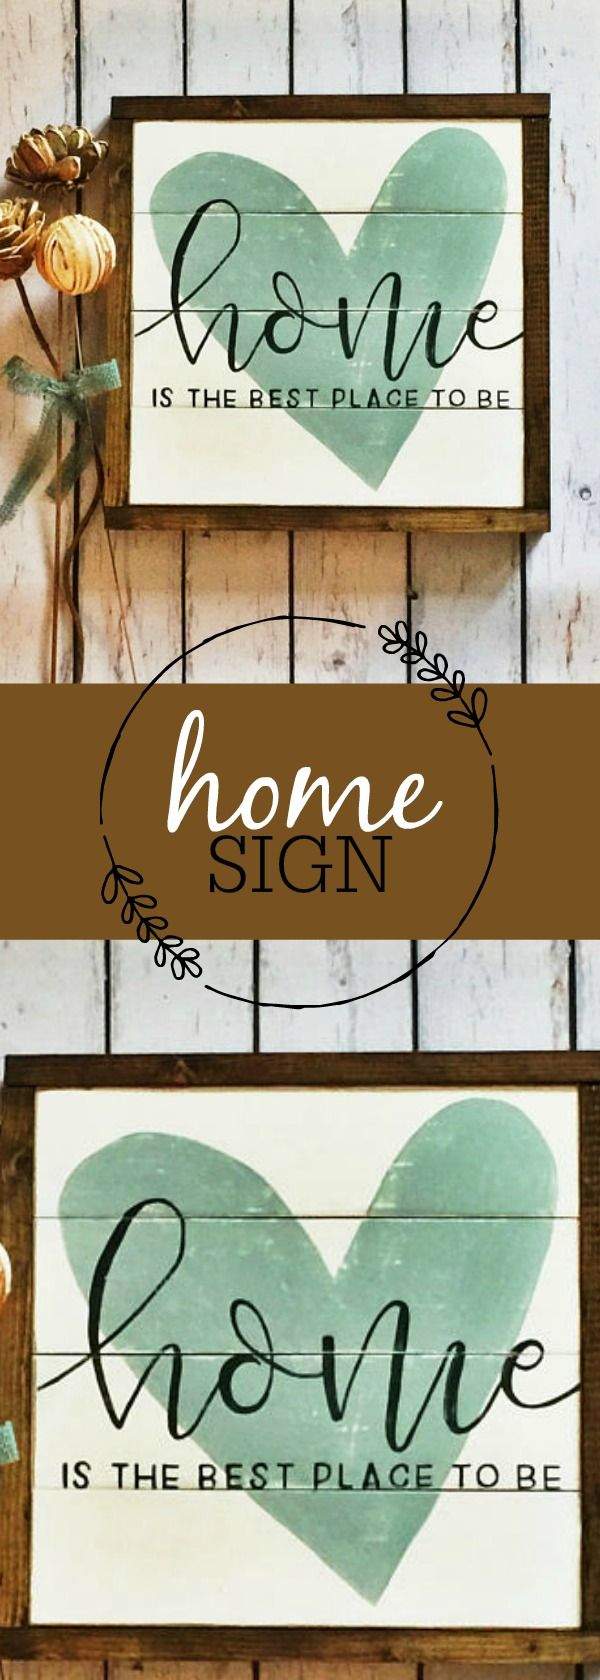 I totally want this sign!! Because it's so true. :) 12x12 with ¾ inch frame on all sides (can vary up to .5 inches) 13.5L x 2D x 13.5H finished size with frame  White painted shiplap inspired background with vintage blue design and black wording. #farmhouse #shiplap #sign #oybpinners #ad